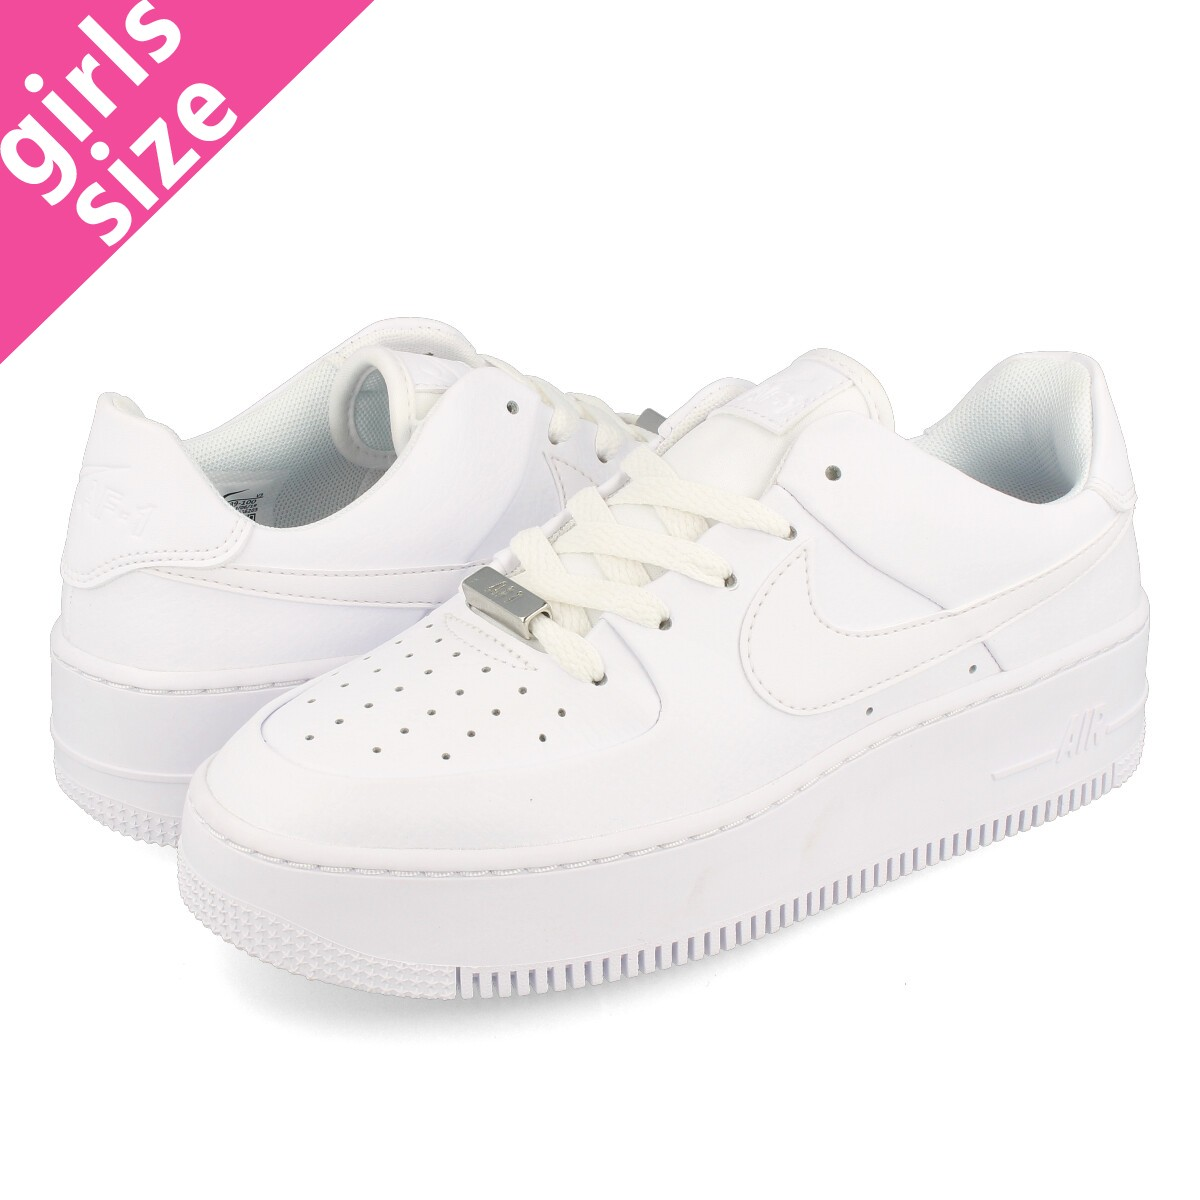 classic fit aaacb 6e705 NIKE WMNS AIR FORCE 1 SAGE LOW Nike women air force 1 sage low  WHITE/WHITE/WHITE ar5339-100